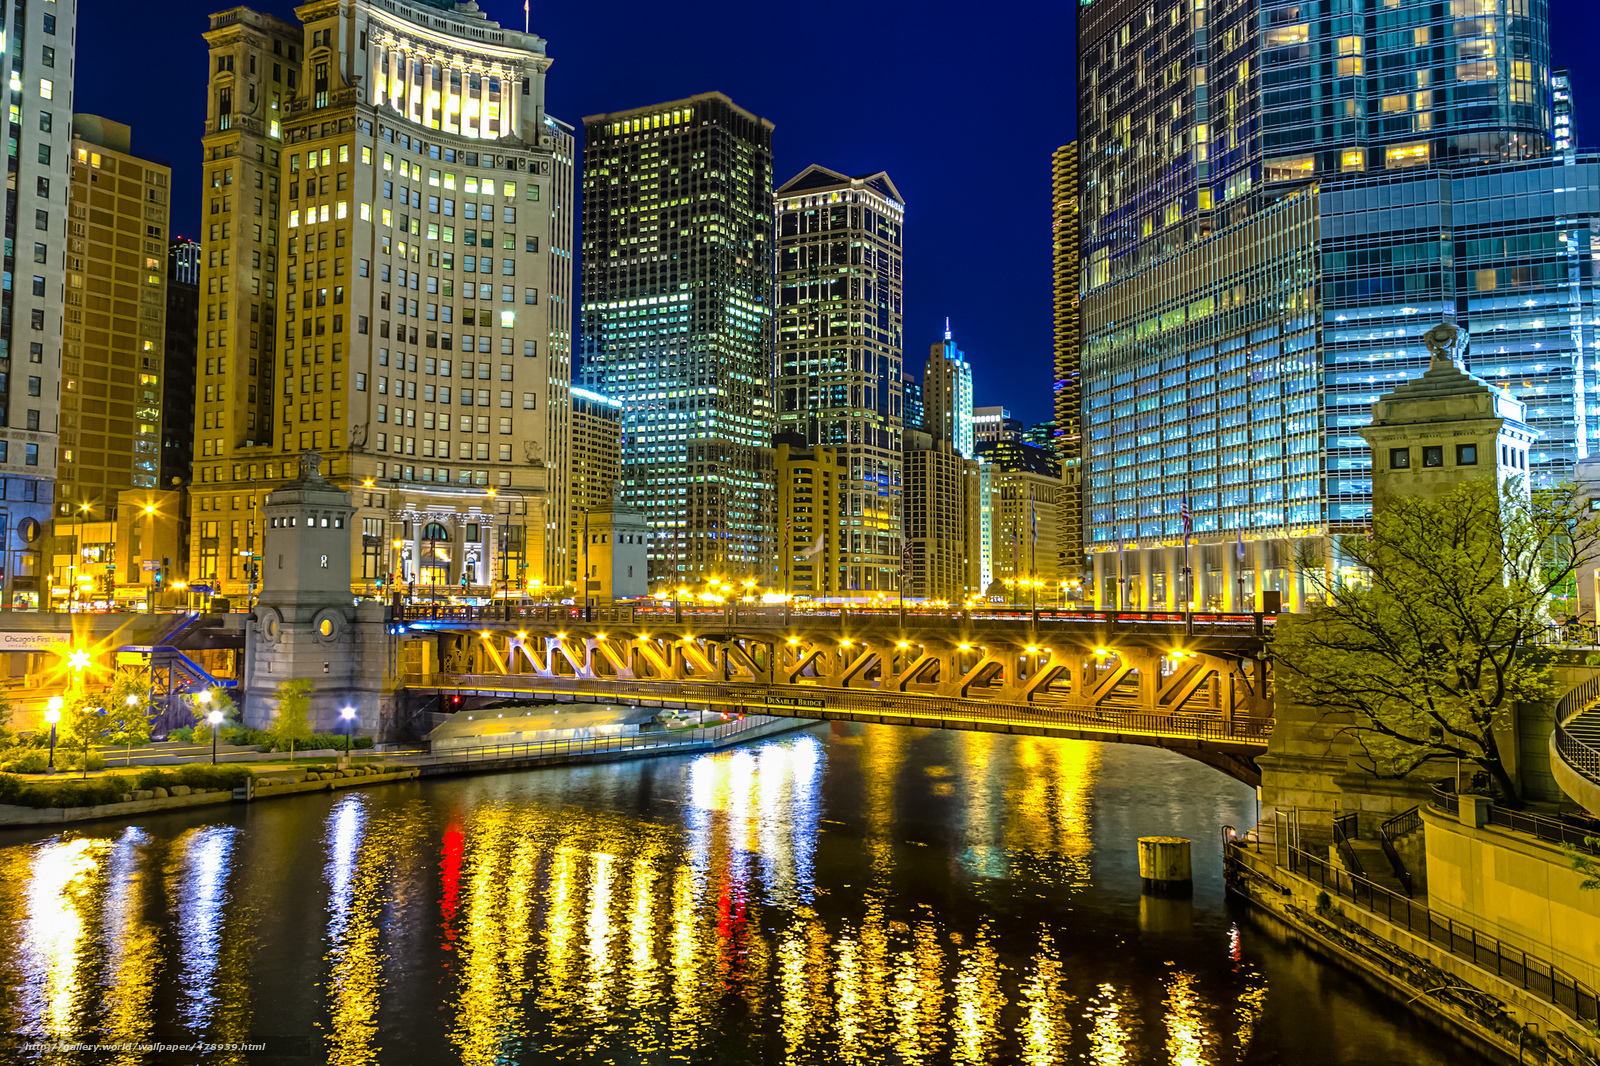 Download wallpaper Chicago Chicago illinois Illinois 1600x1066